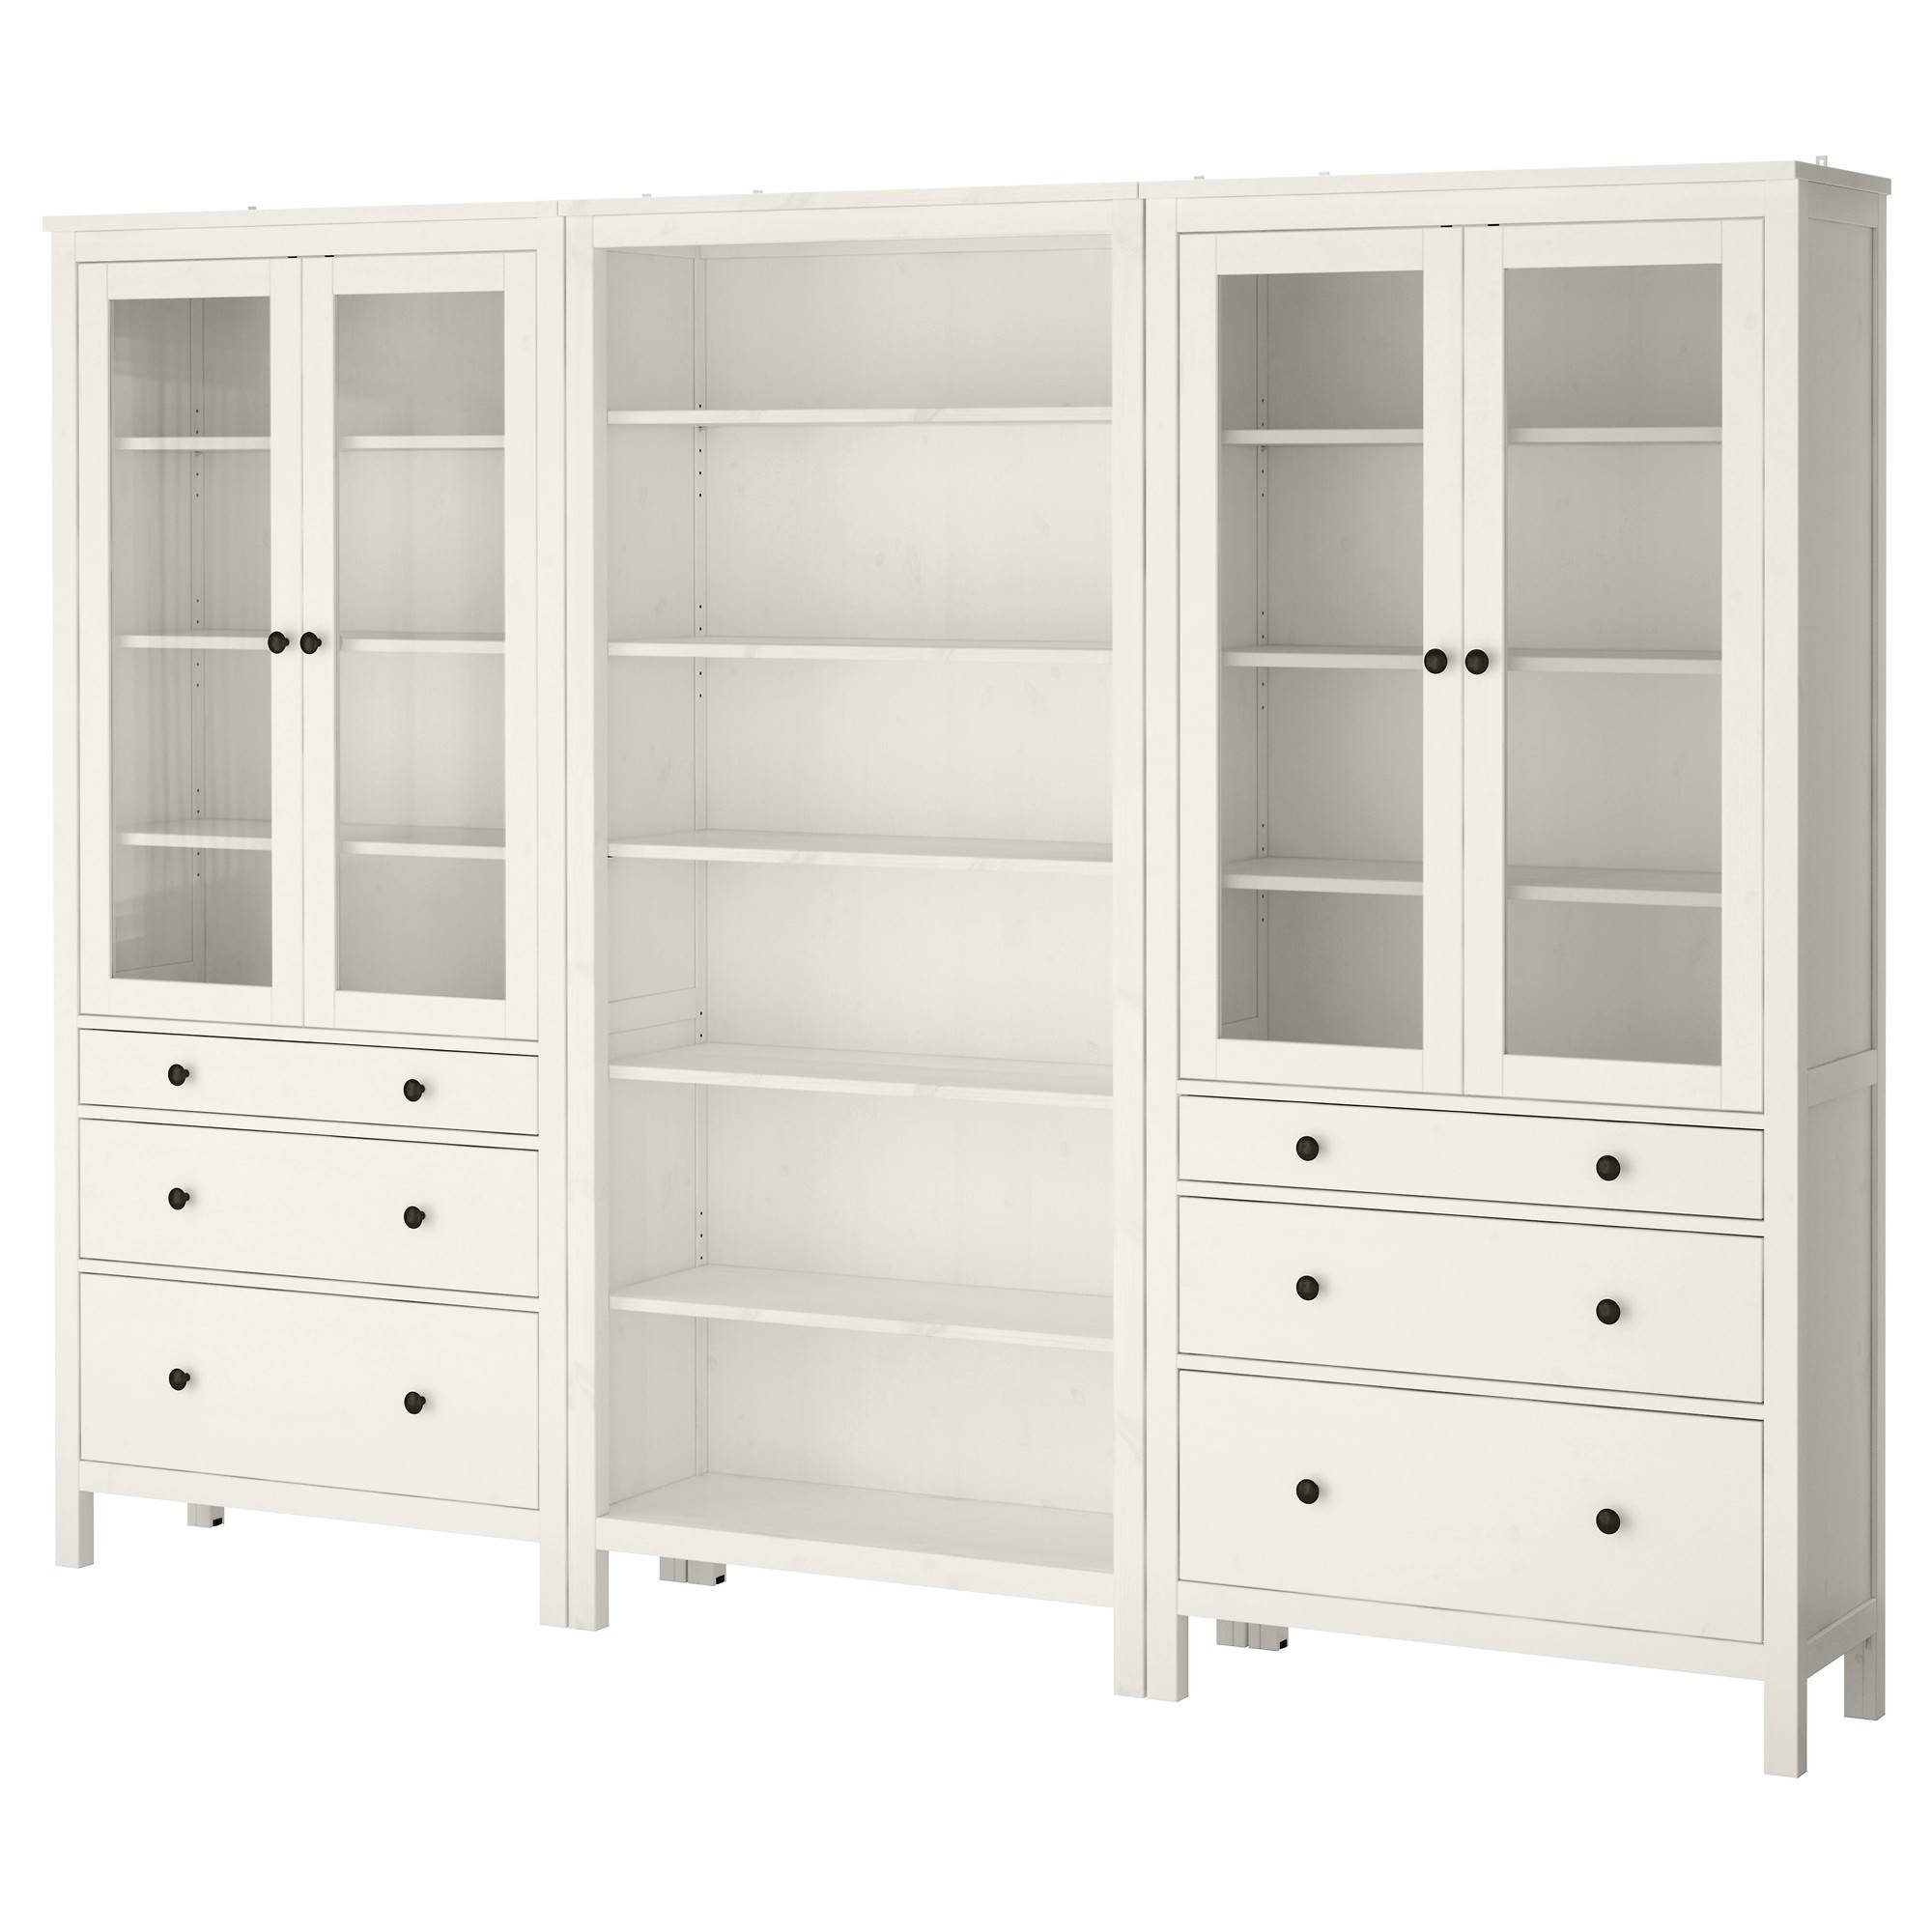 Hemnes Storage Combination W Doors/drawers - White Stain - Ikea pertaining to Wardrobe Drawers And Shelves Ikea (Image 14 of 30)